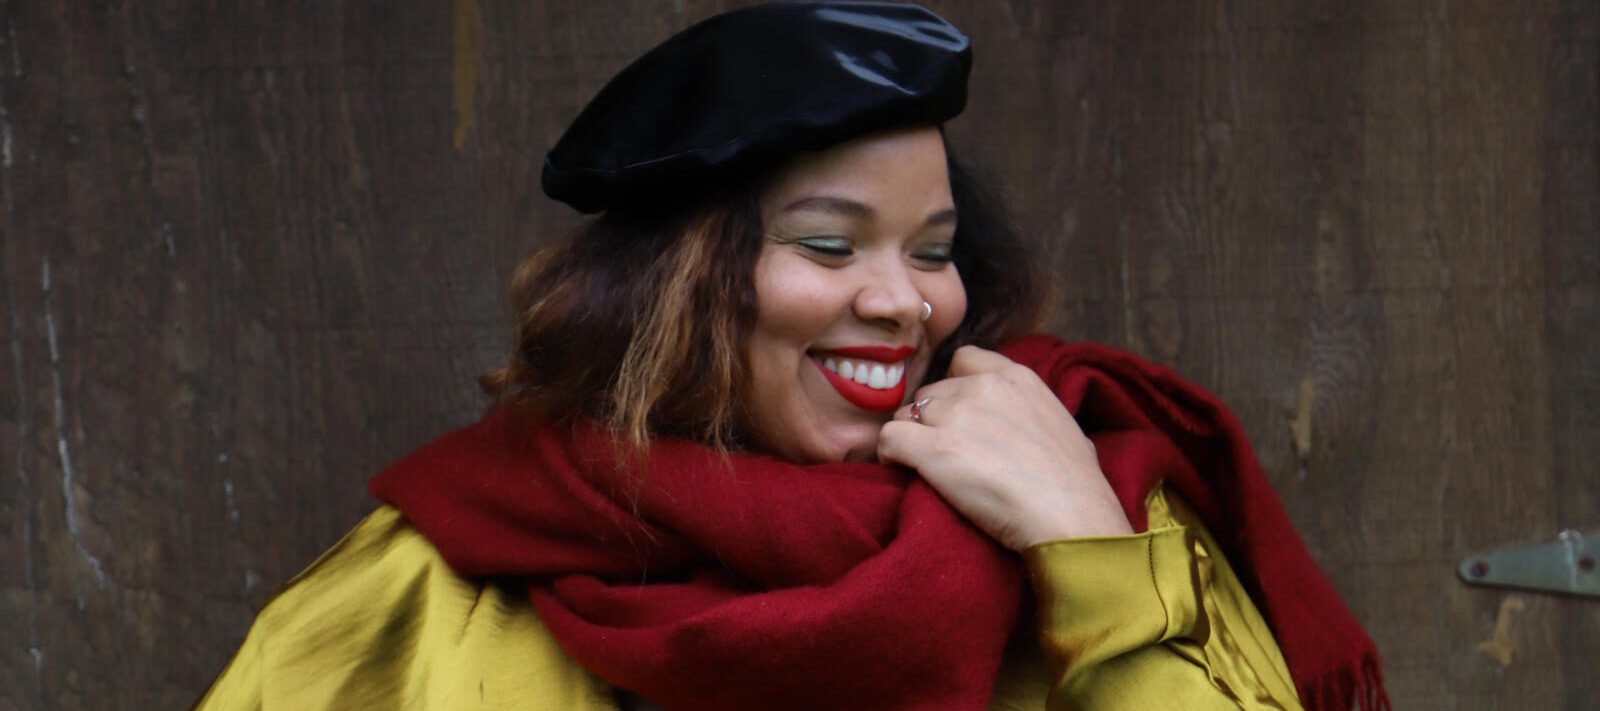 A medium-skinned woman stands in front of an industrial wall wearing a gold silk long sleeve dress with a deep V-neck, a black velour beret, and a cranberry red scarf wrapped loosely aroud her neck. With her right hand on her hip and her left brought up to the scarf, she smiles brightly, looking to the side.